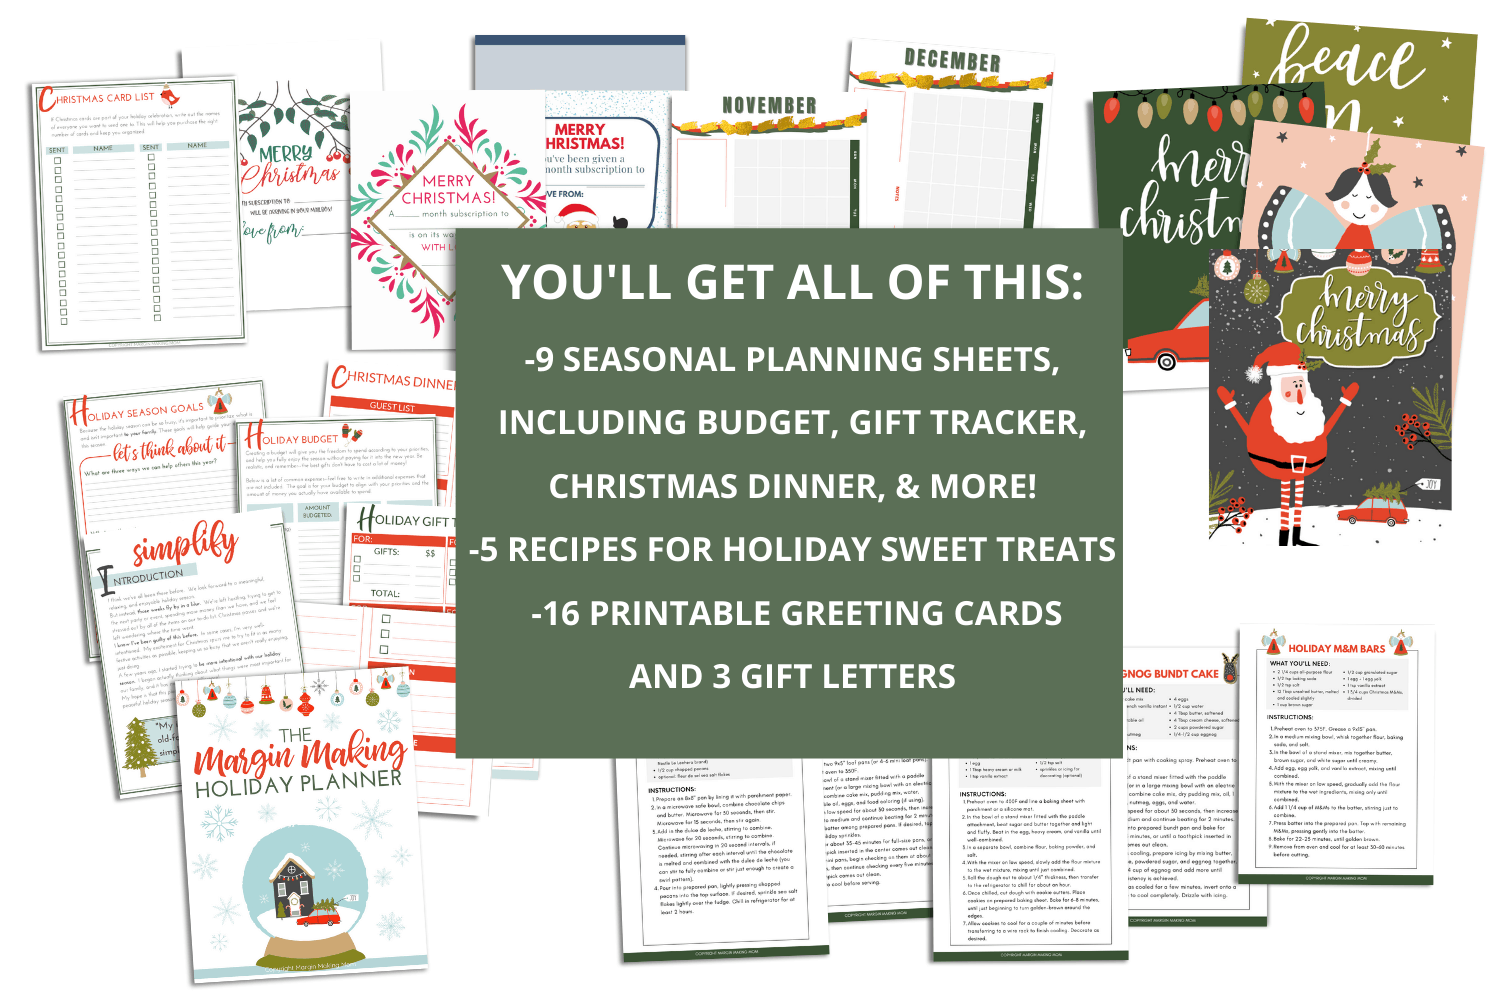 sample pages from the Margin Making Holiday Planner